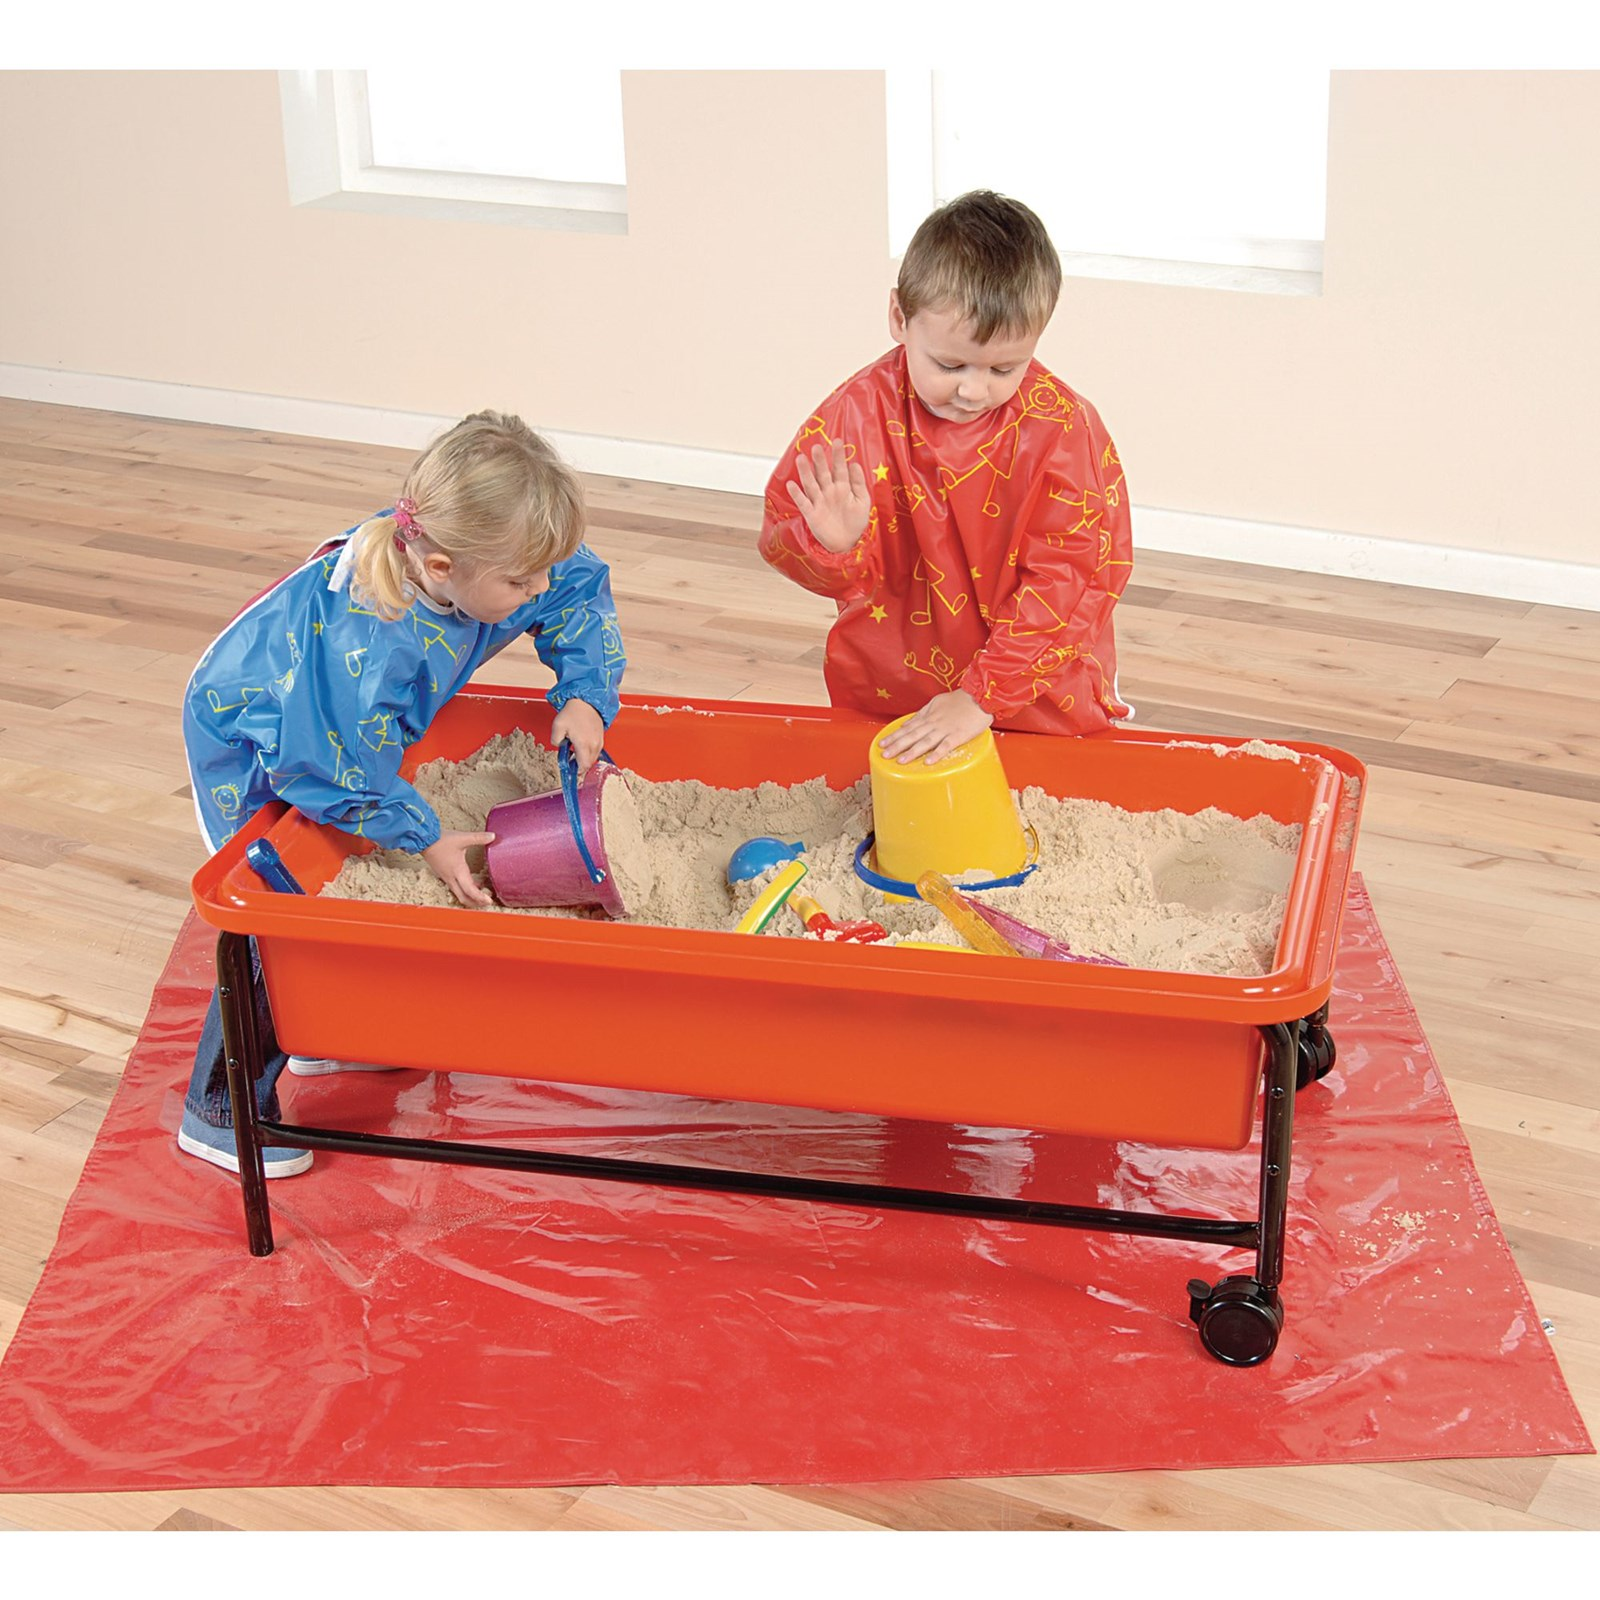 Sand and Water Play Tray - Red